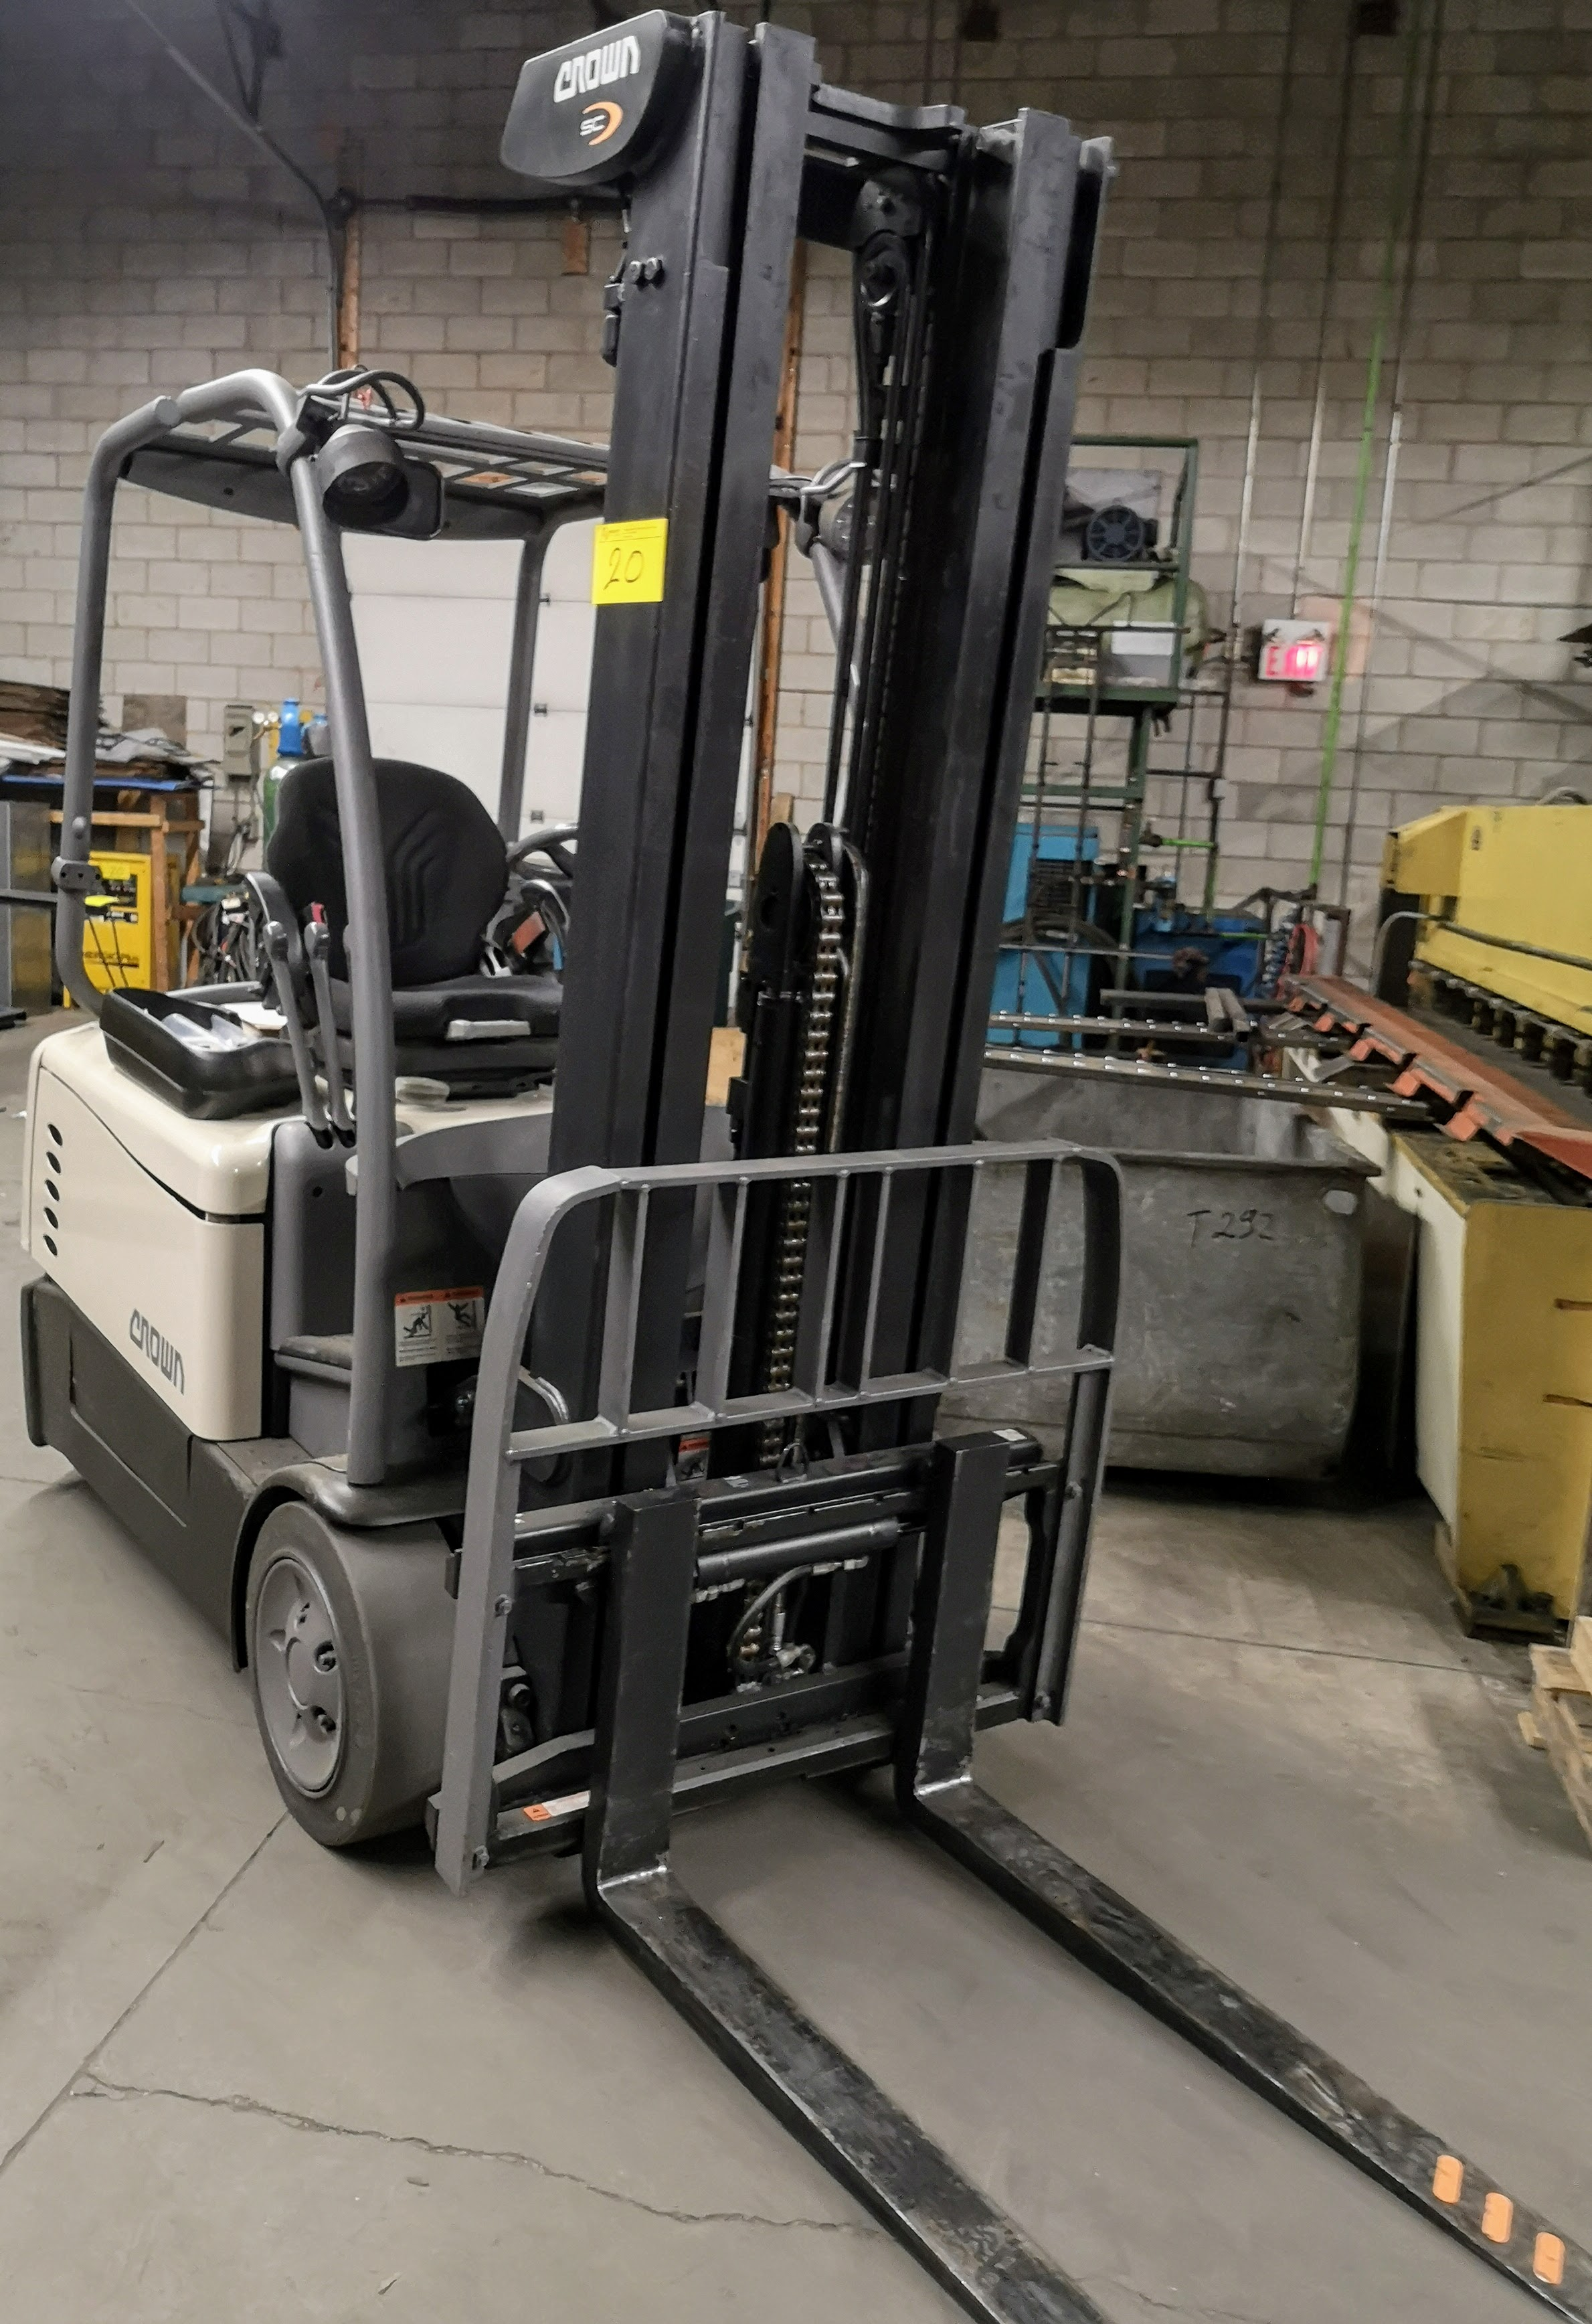 "Lot 20 - 2013 CROWN SC5245-40 3-WHEEL ELECTRIC FORKLIFT, 4,000LB CAP., 3-STAGE MAST, 208"" MAX LIFT, SIDE"